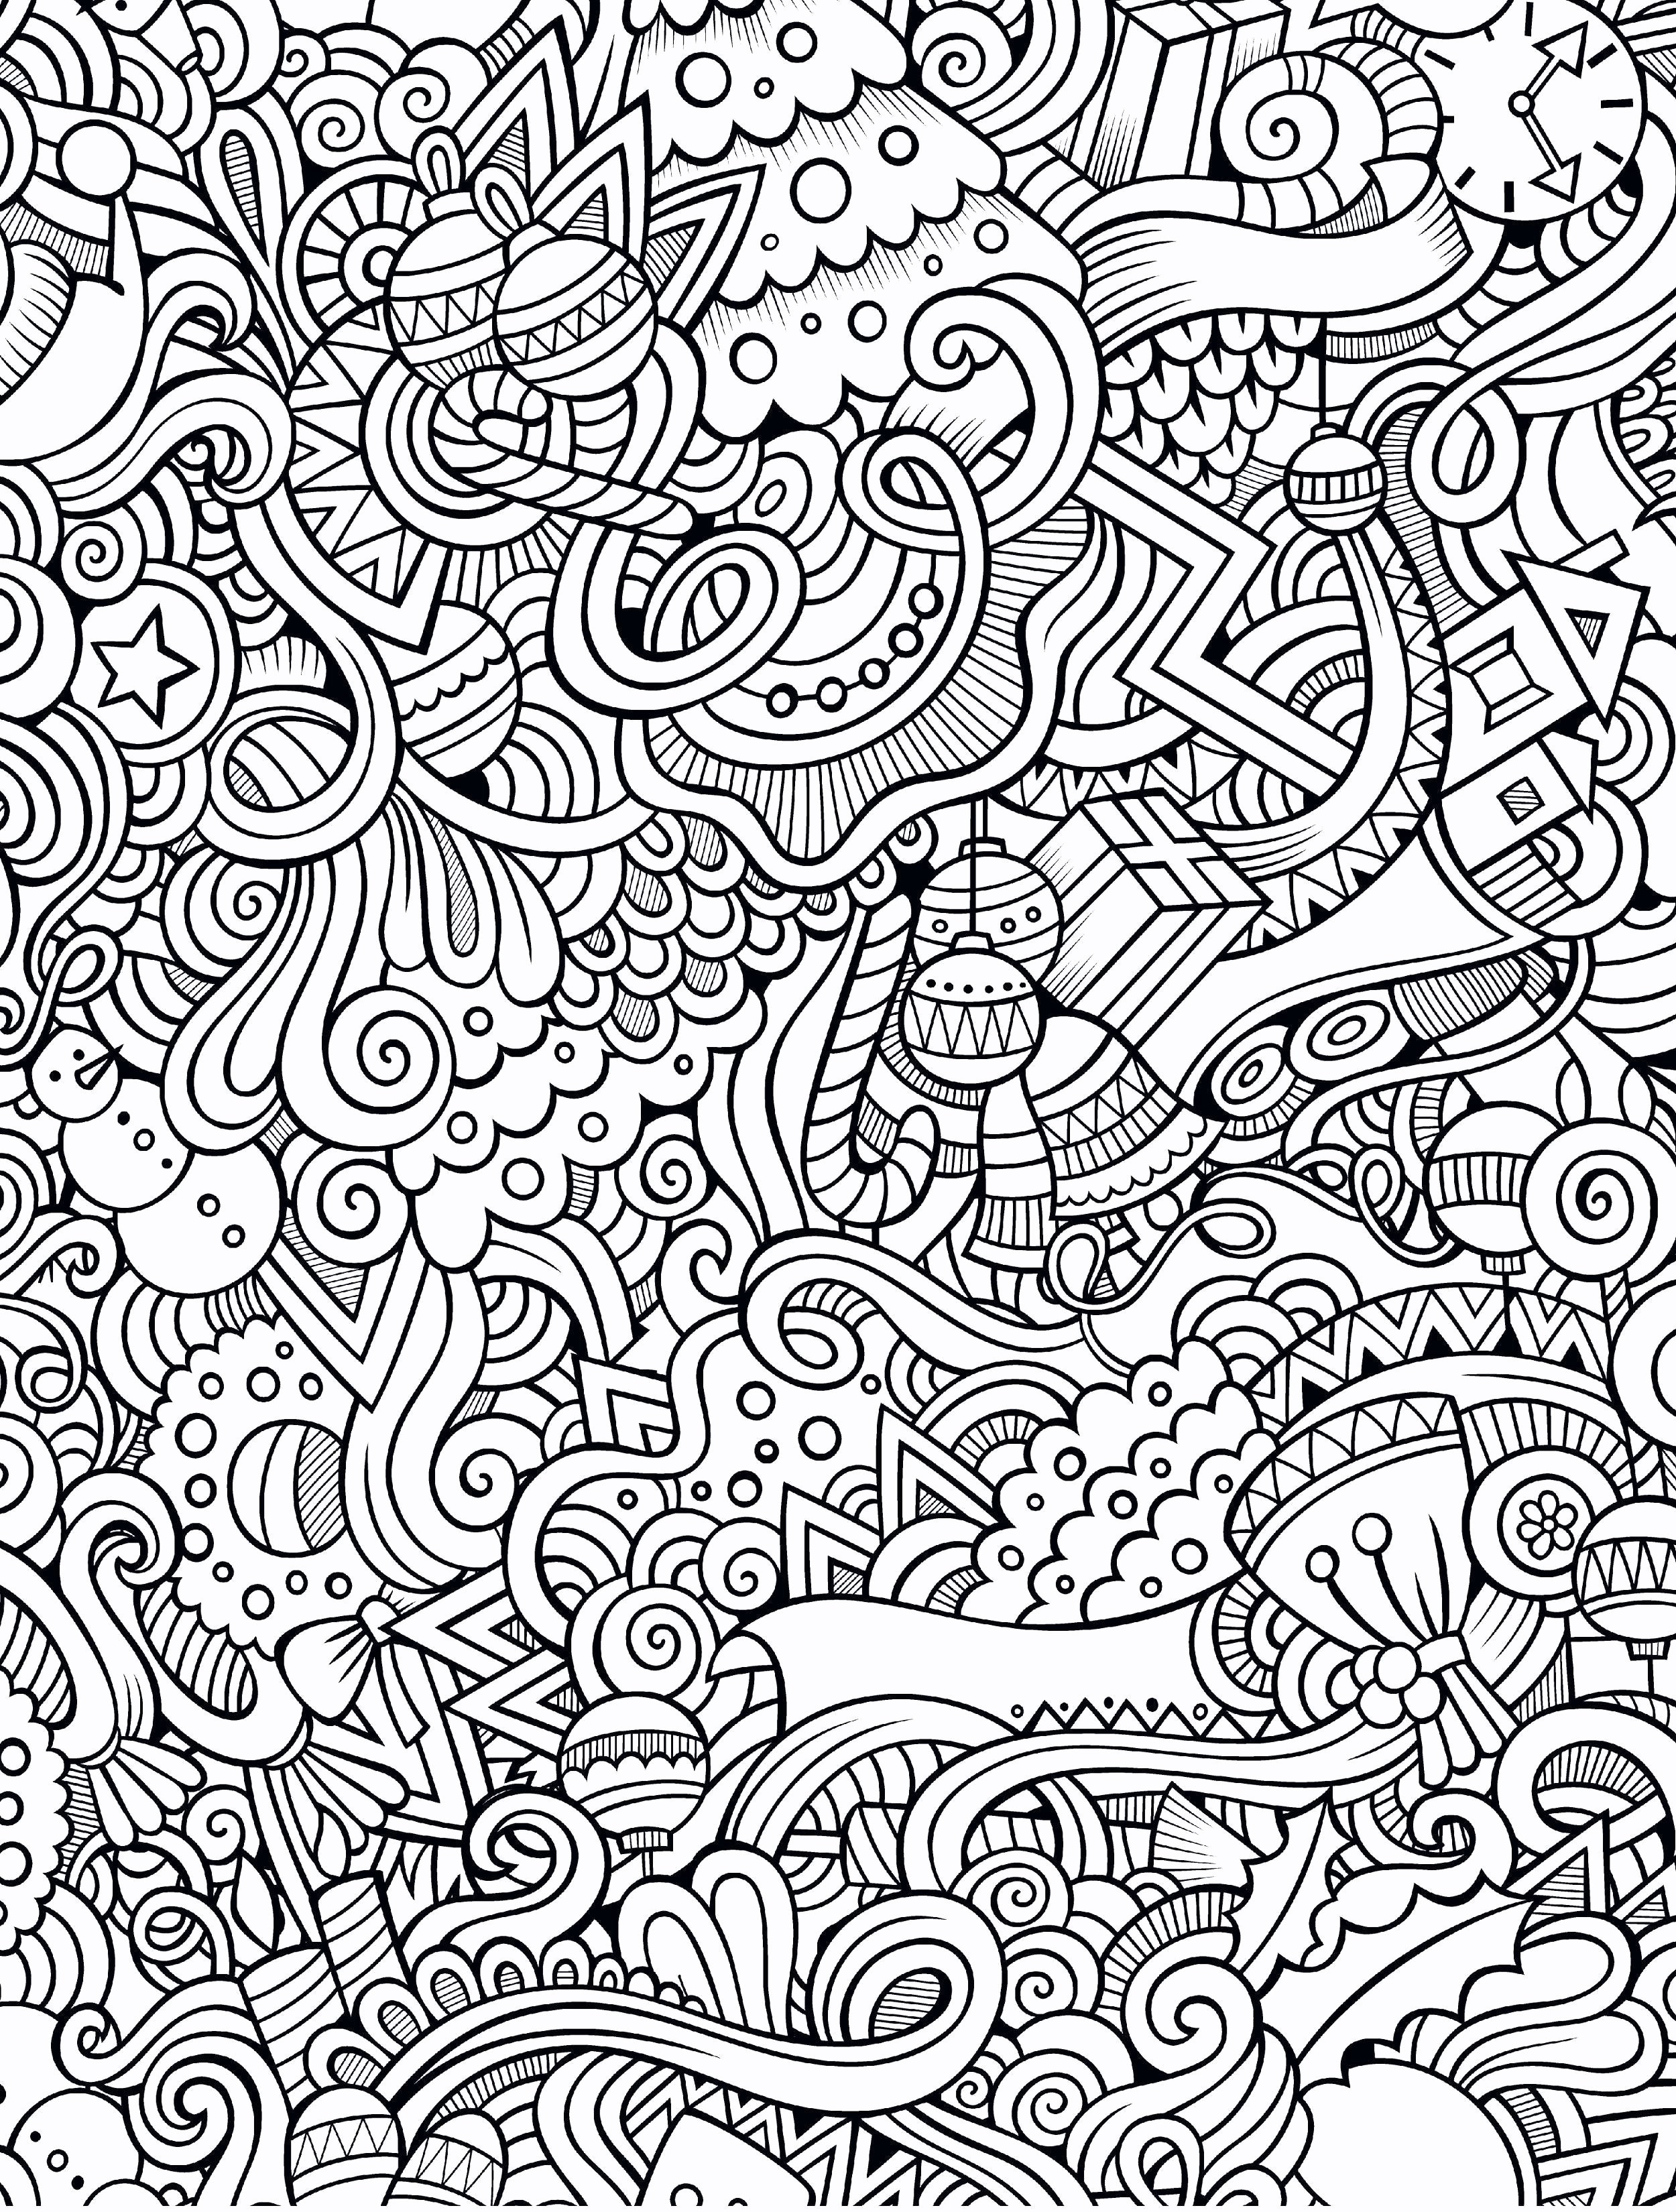 Coloring Pages ~ Free Happy Birthday Coloring Pages For Mom - Free Printable Coloring Cards For Adults